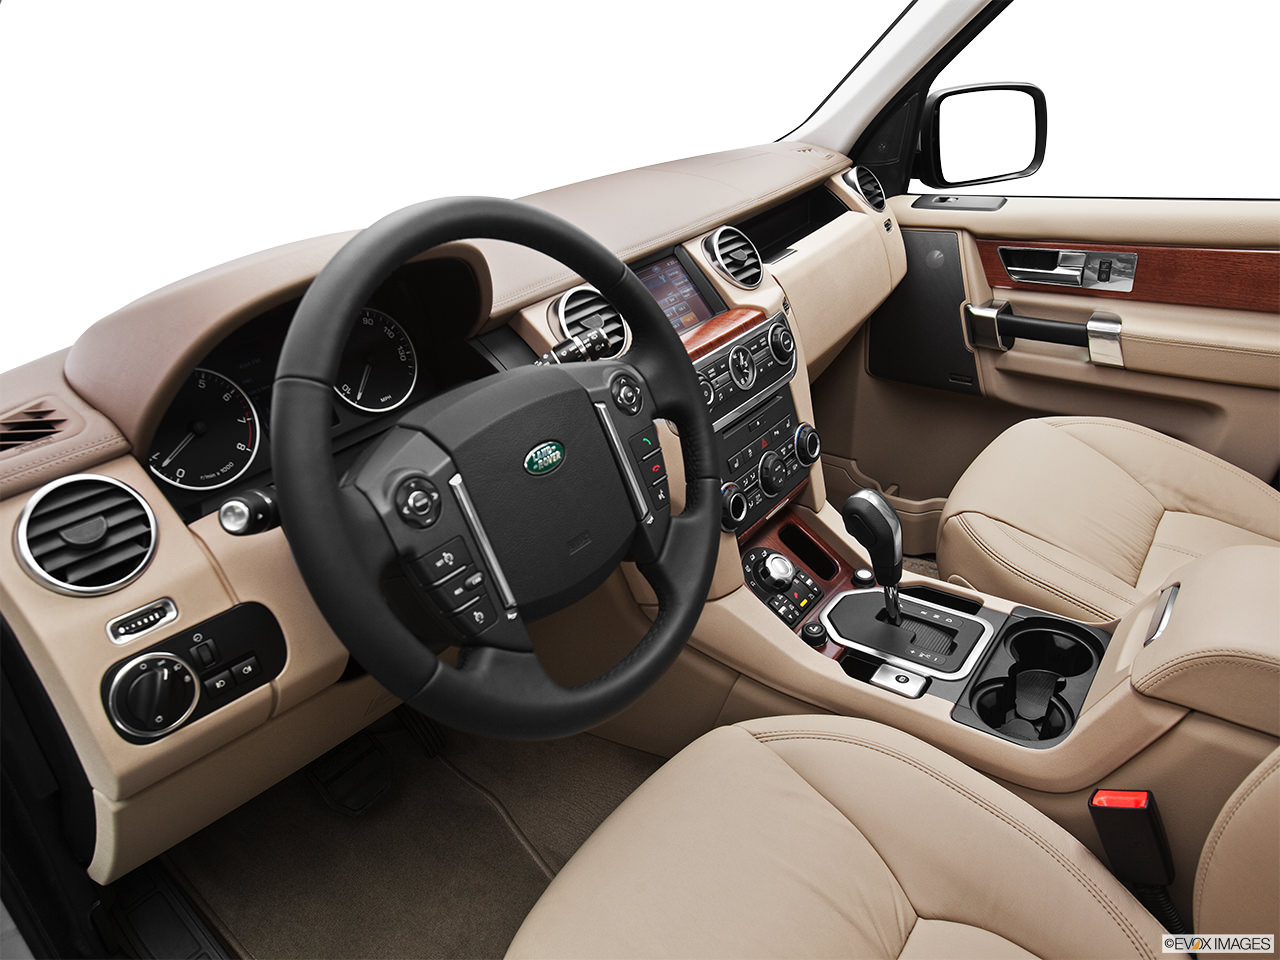 Land Rover LR4 2012 Interior